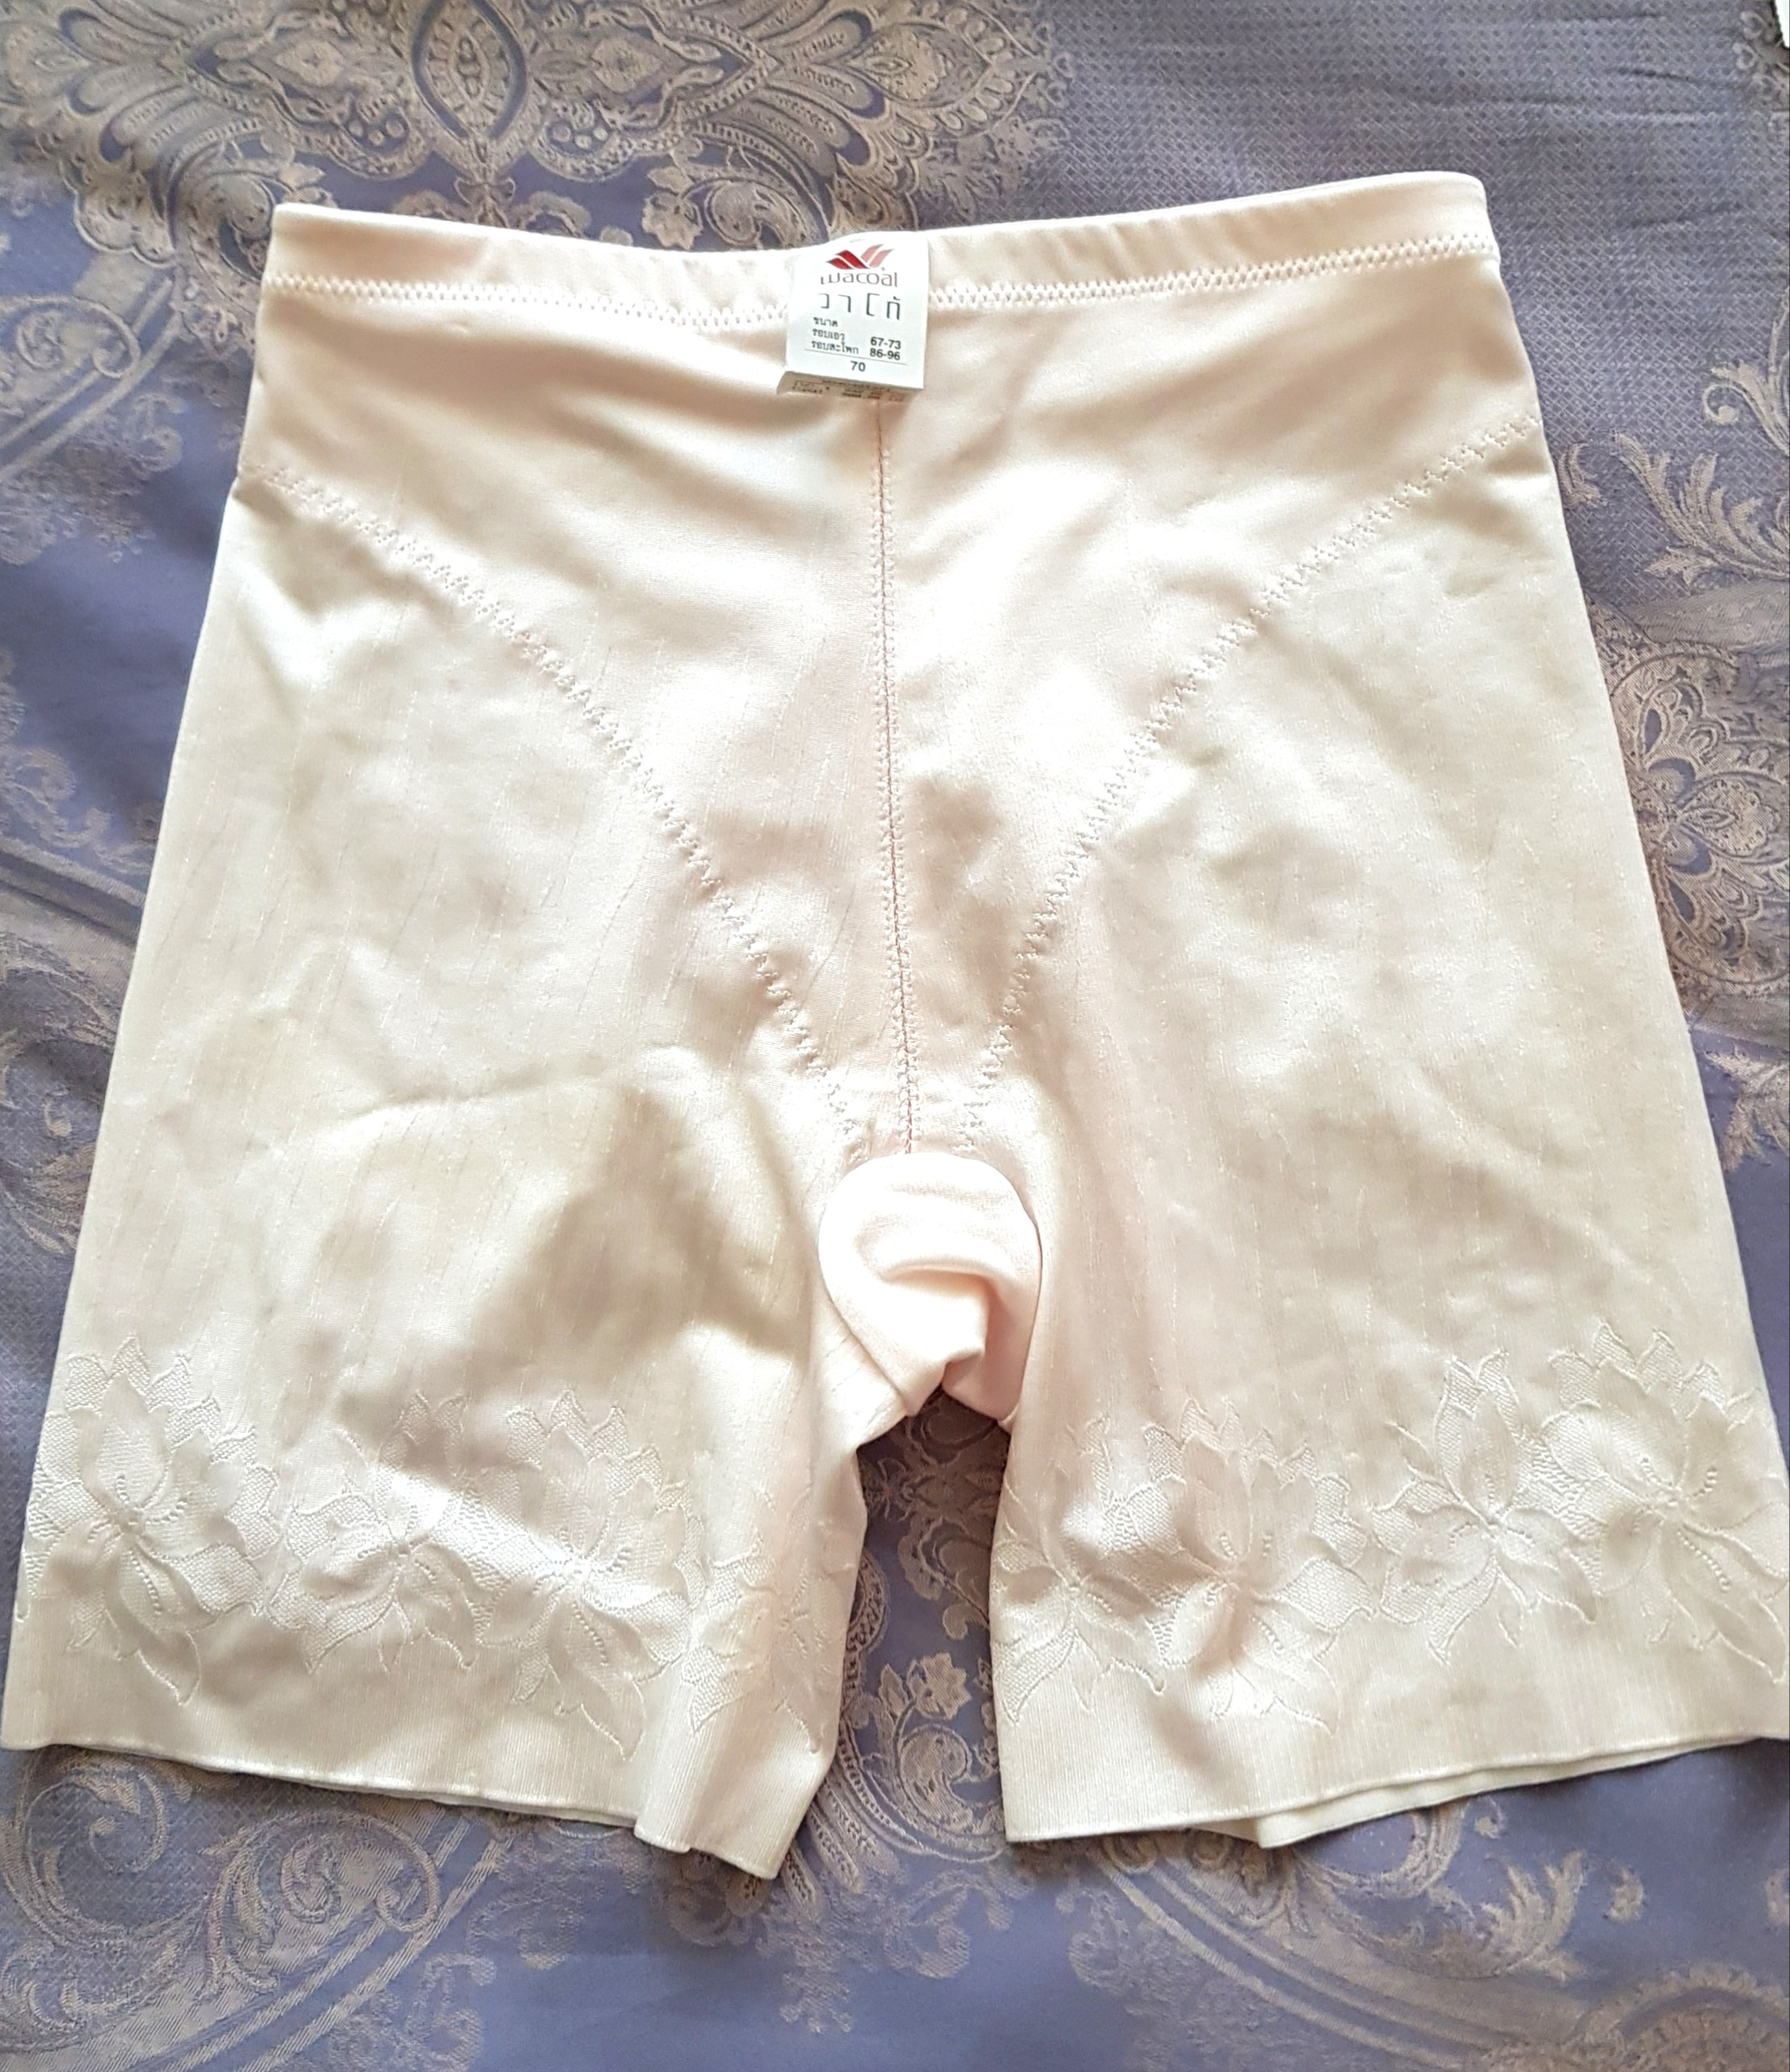 53367659cbd6 Authentic BN new Beige pink WACOAL support panty - size 70, Thailand ...